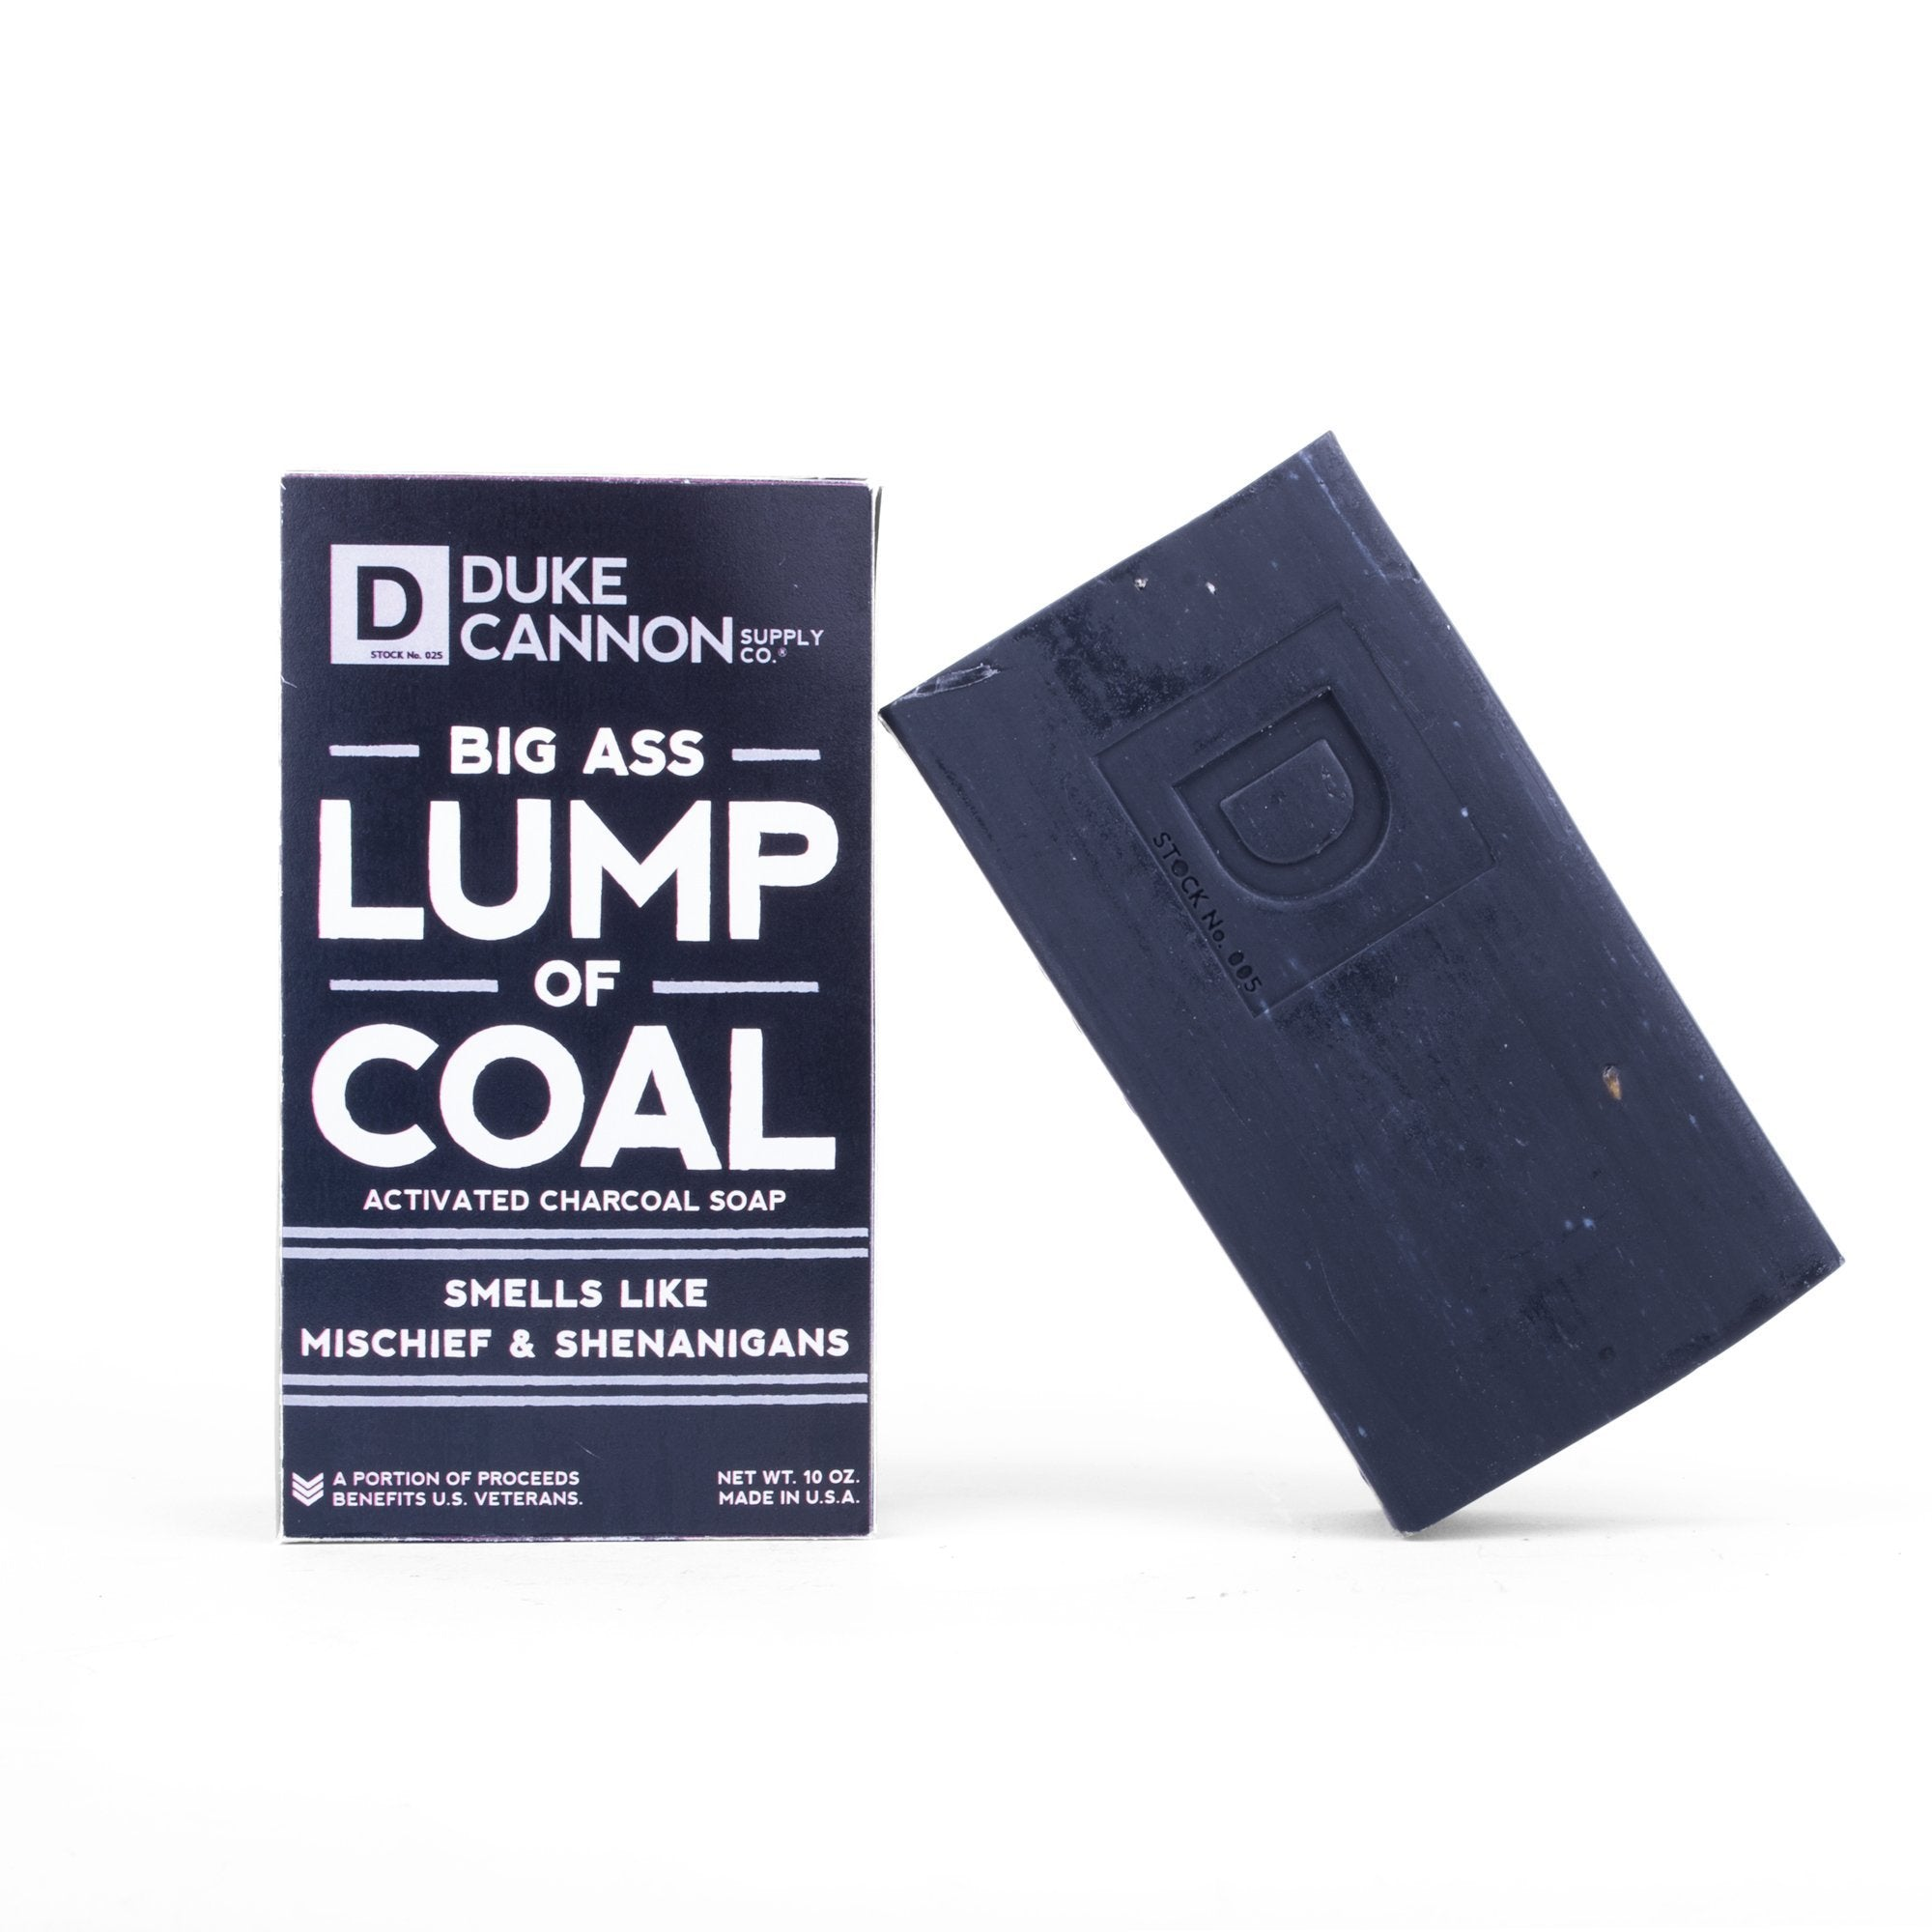 Duke Cannon Supply Co. Big Ass Lump of Coal